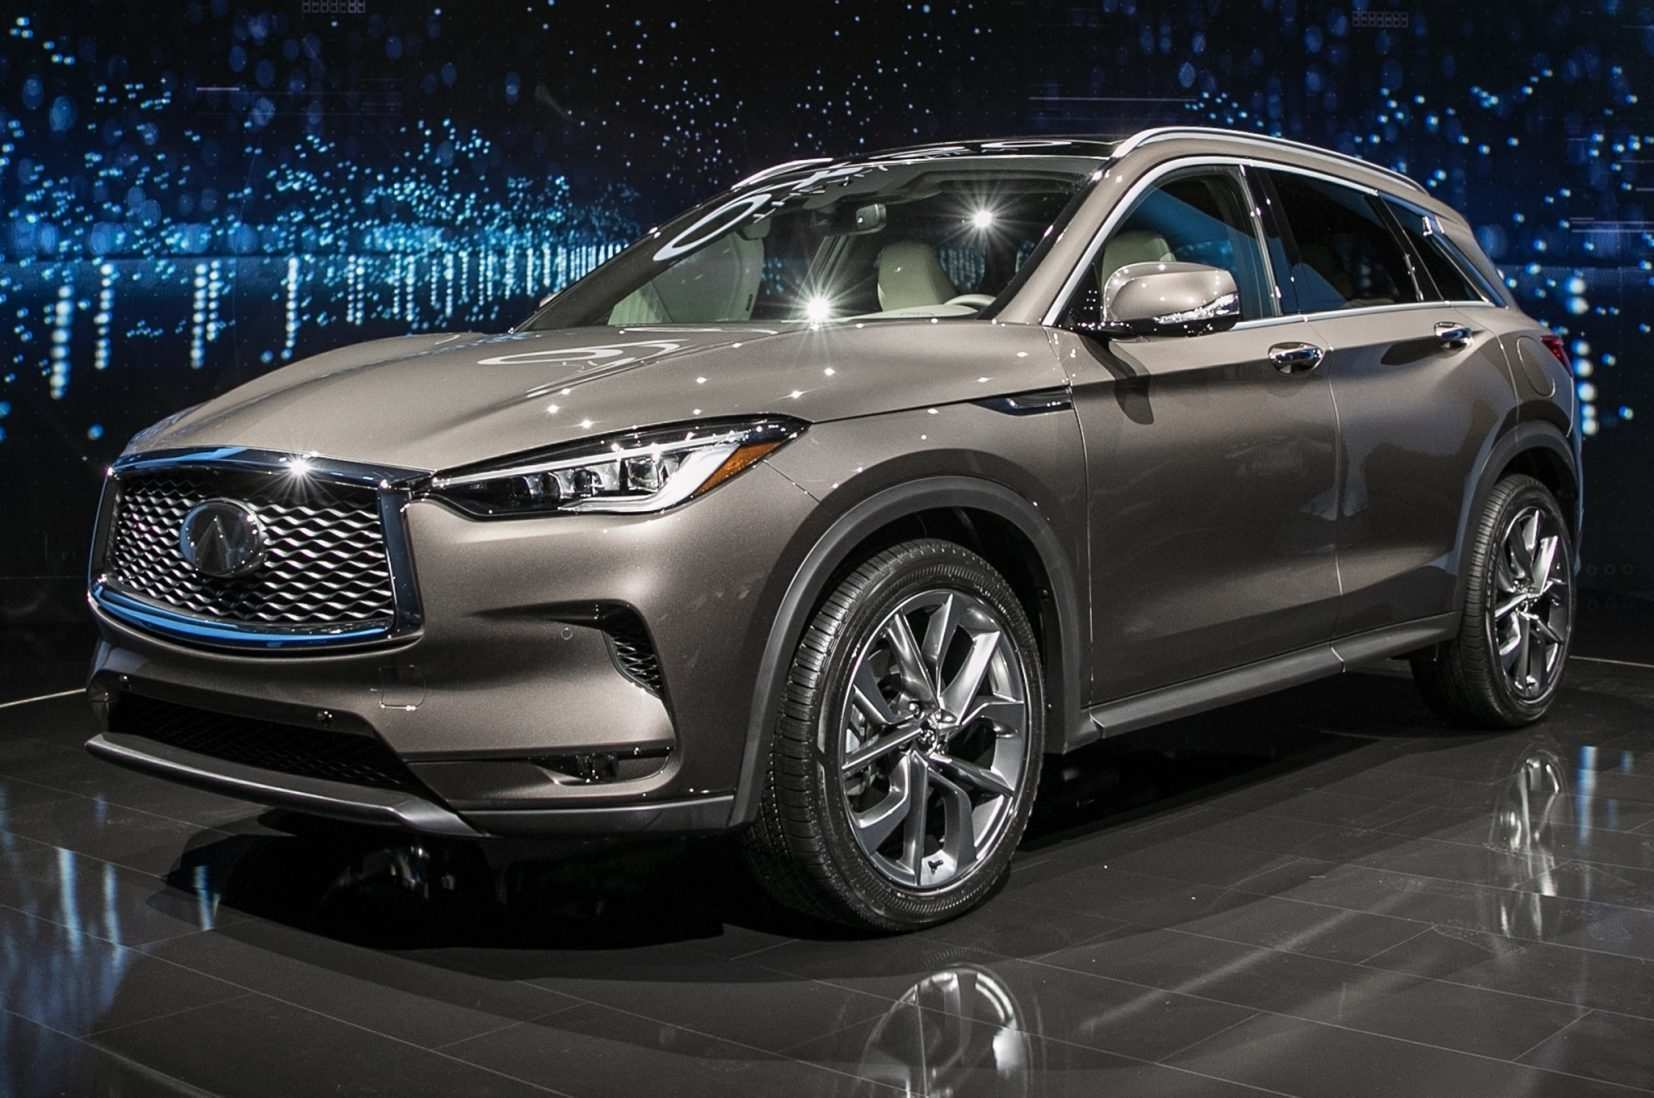 36 Great 2019 Infiniti Price Ratings for 2019 Infiniti Price